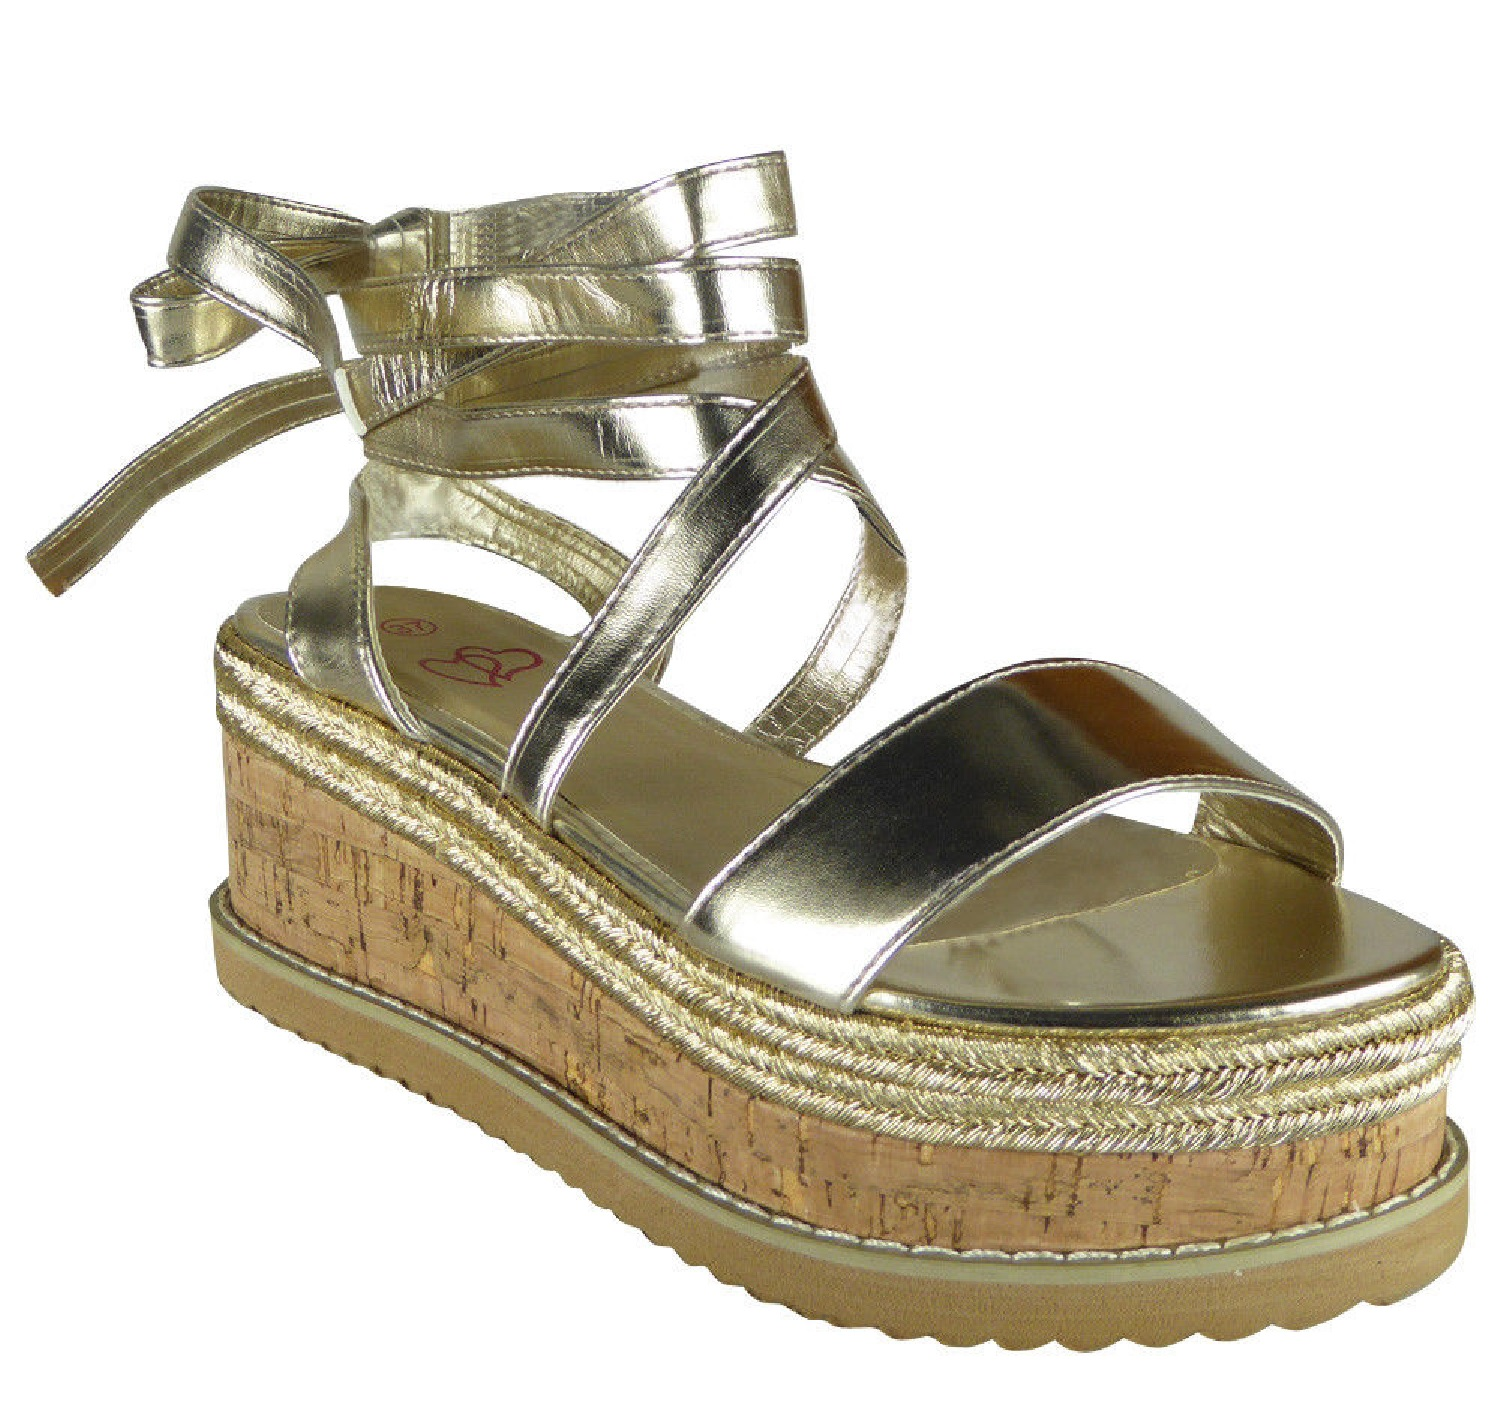 LADIES-WOMENS-FLAT-WEDGE-LACE-TIE-UP-ESPADRILLES-PLATFORM-WEDGE-SUMMER-SANDALS thumbnail 5